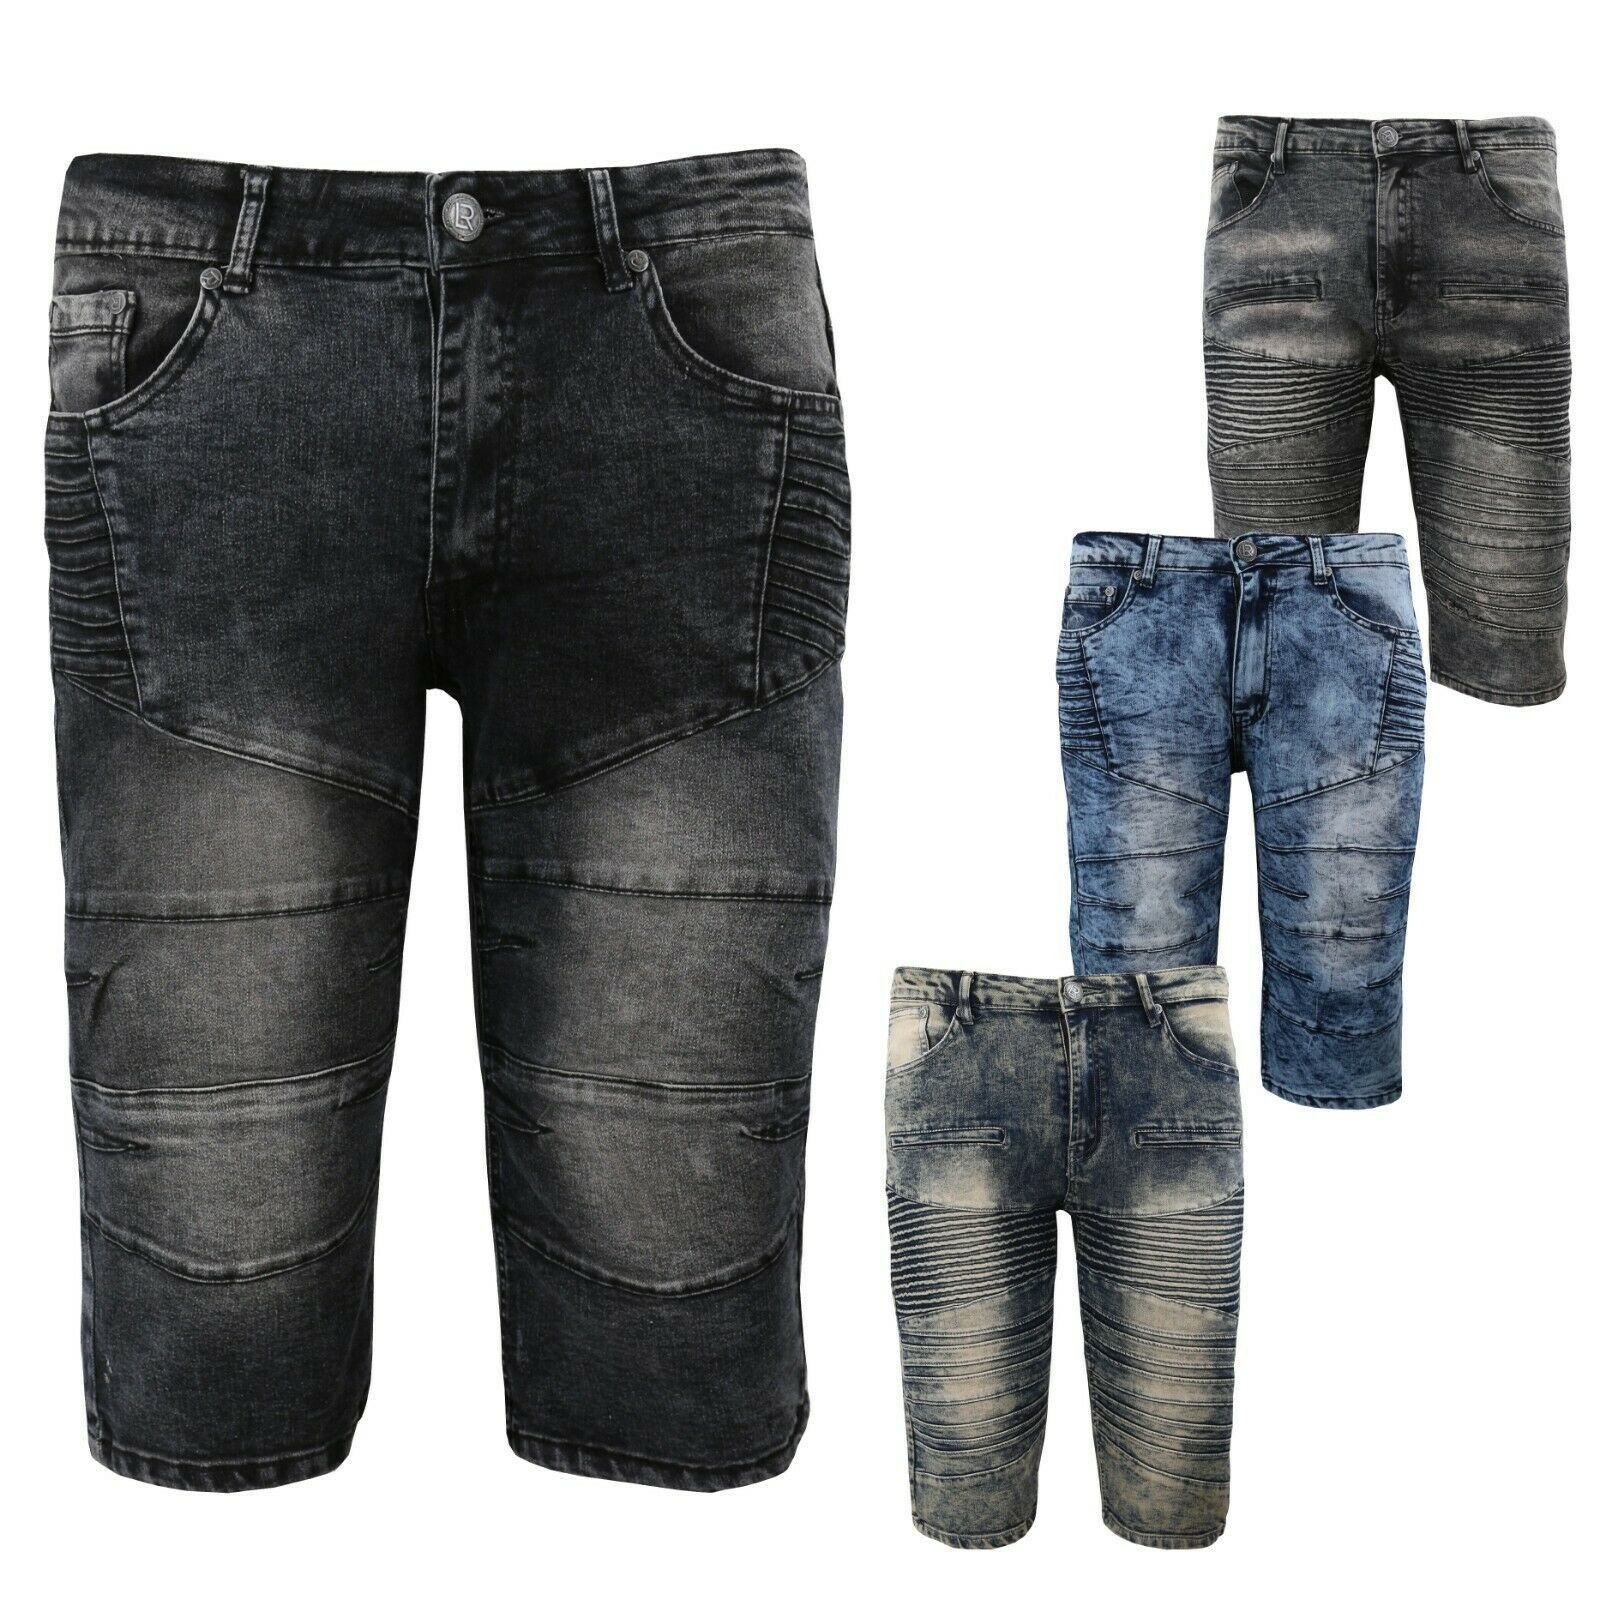 LR Scoop Men's Distressed Denim Fade Wash Slim Fit Moto Skinny Jean Shorts